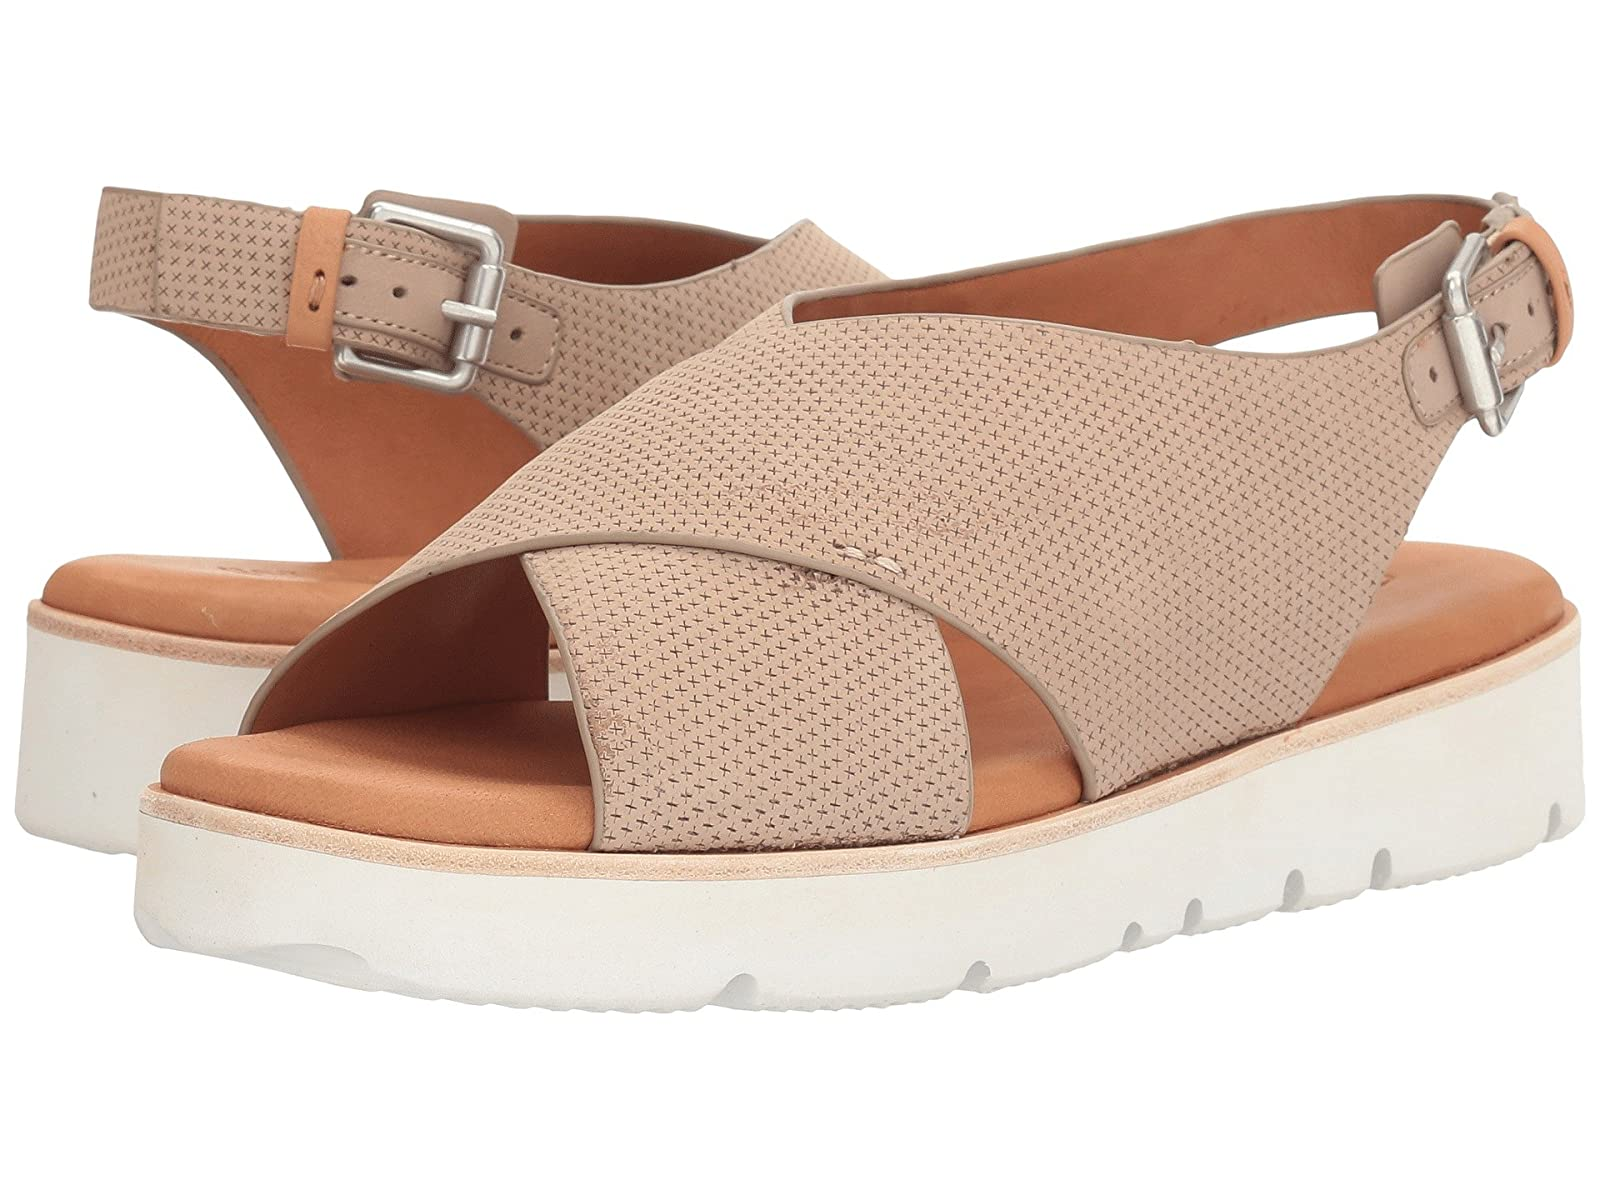 Gentle Souls by Kenneth Cole KikiAtmospheric grades have affordable shoes